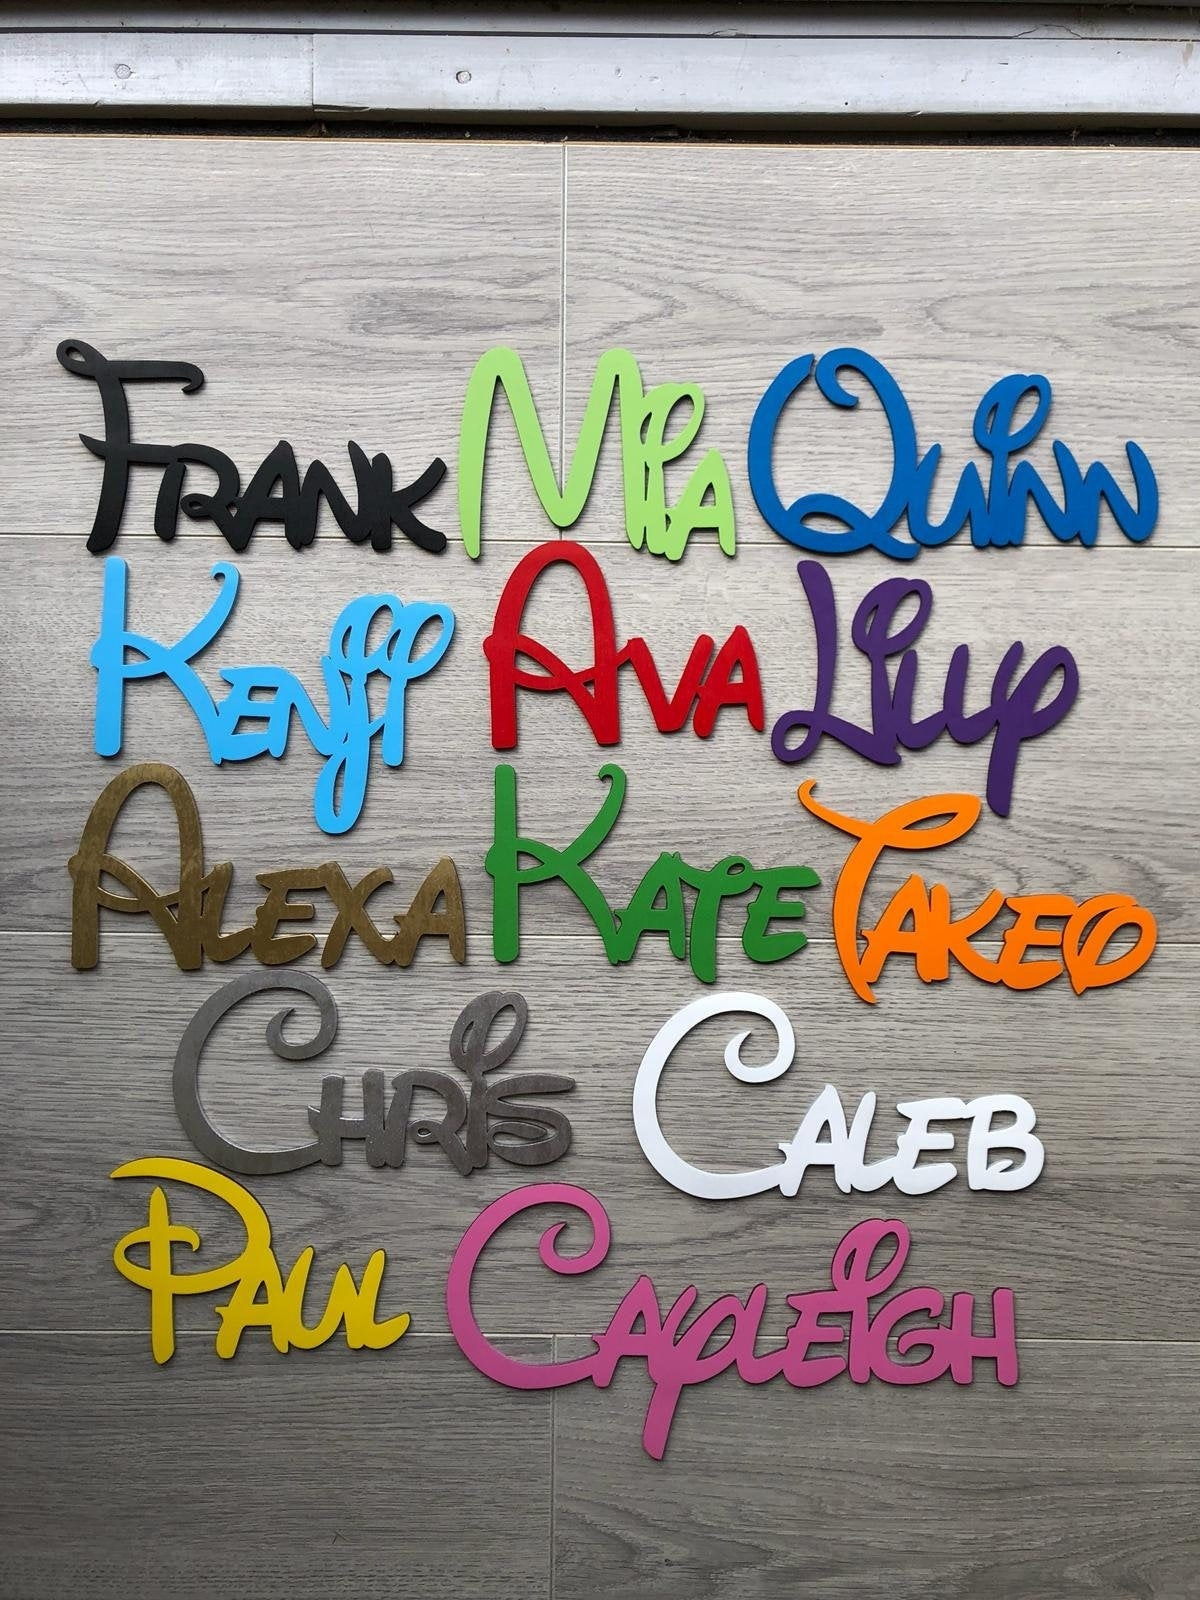 A variety of names spelled out using the Disney font in a variety of color.